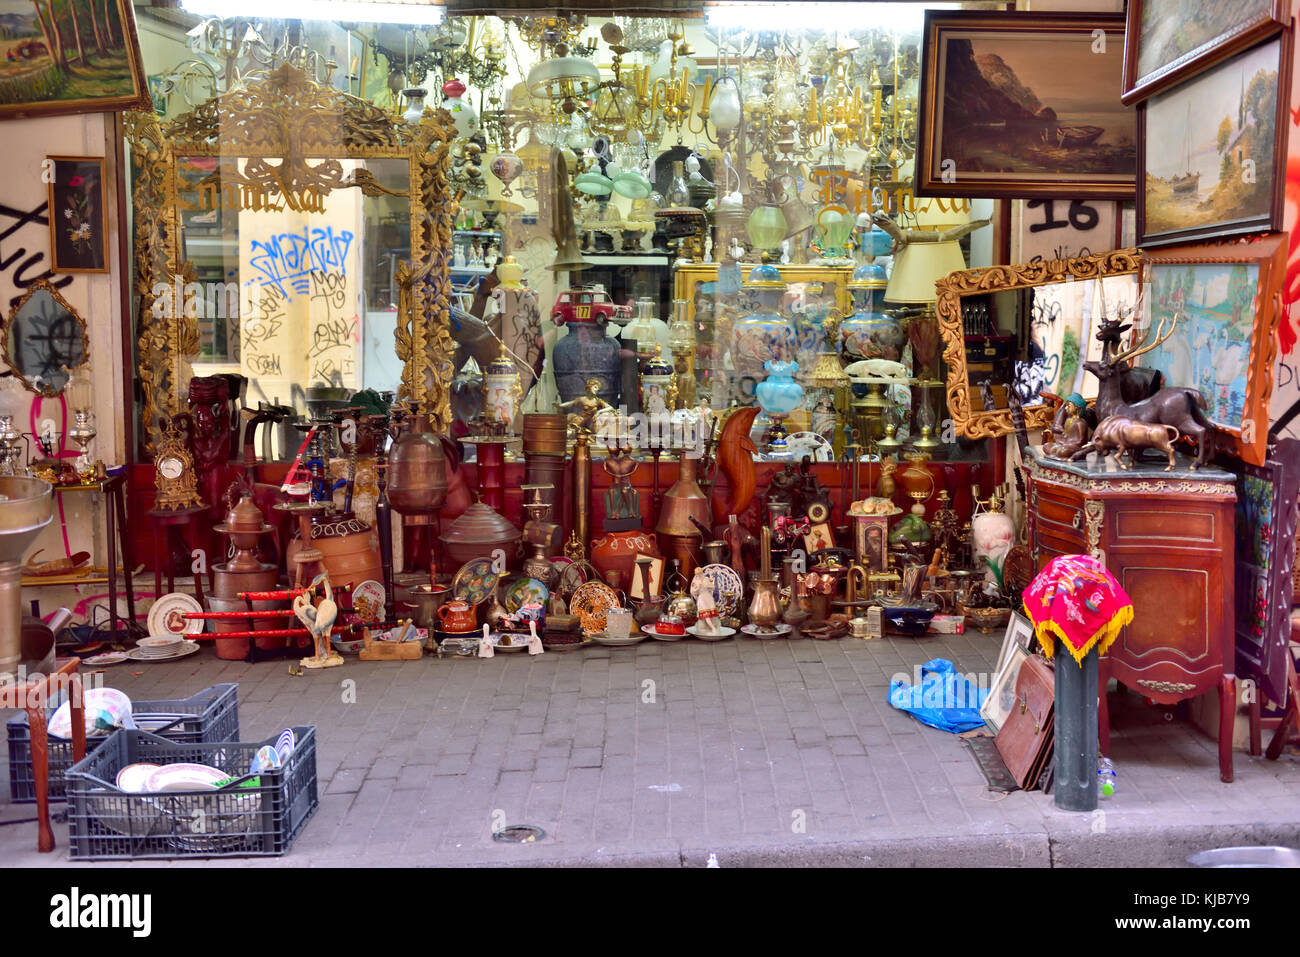 Street market with bric-a-brac, antiques and collectables in Monastiriaki area of central Athens, Greece - Stock Image